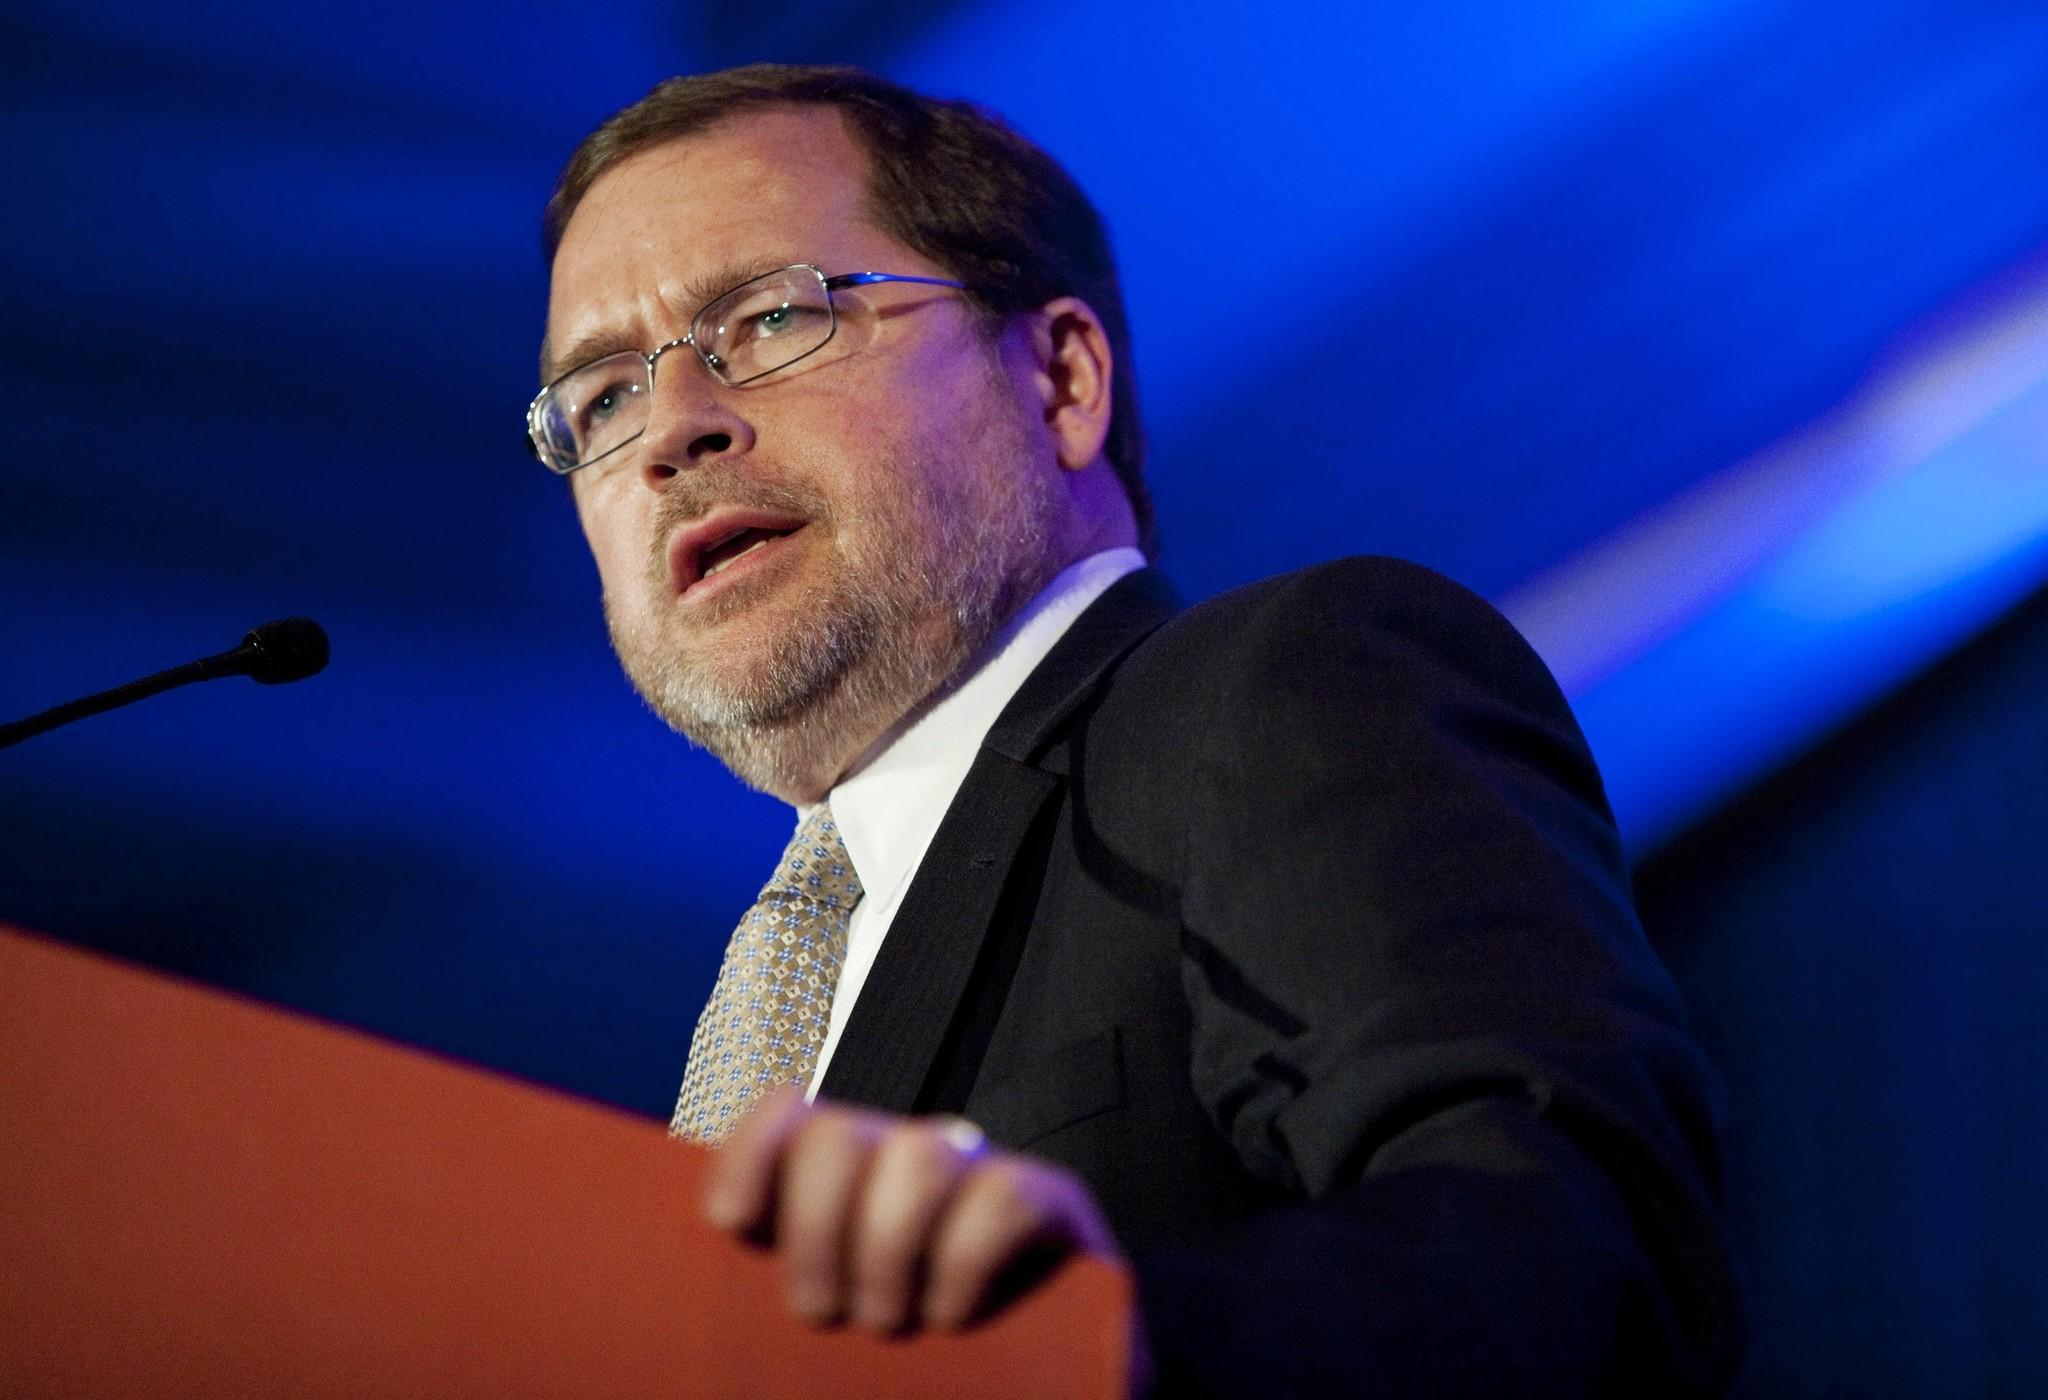 Grover Norquist, chairman of Americans for Tax Reform, speaks at the Faith and Freedom Coalition in Washington June 3, 2011. Republican White House hopefuls courted Christian conservative voters on Friday at the conference where U.S. economic concerns shared the stage with social issues that dominate the evangelical agenda. REUTERS/Joshua Roberts (UNITED STATES - Tags: POLITICS RELIGION BUSINESS) ORG XMIT: WAS707 ORG XMIT: CHI1106031927051180 ** Usable by BS, CT, DP, FL, HC, MC, OS and HOY **